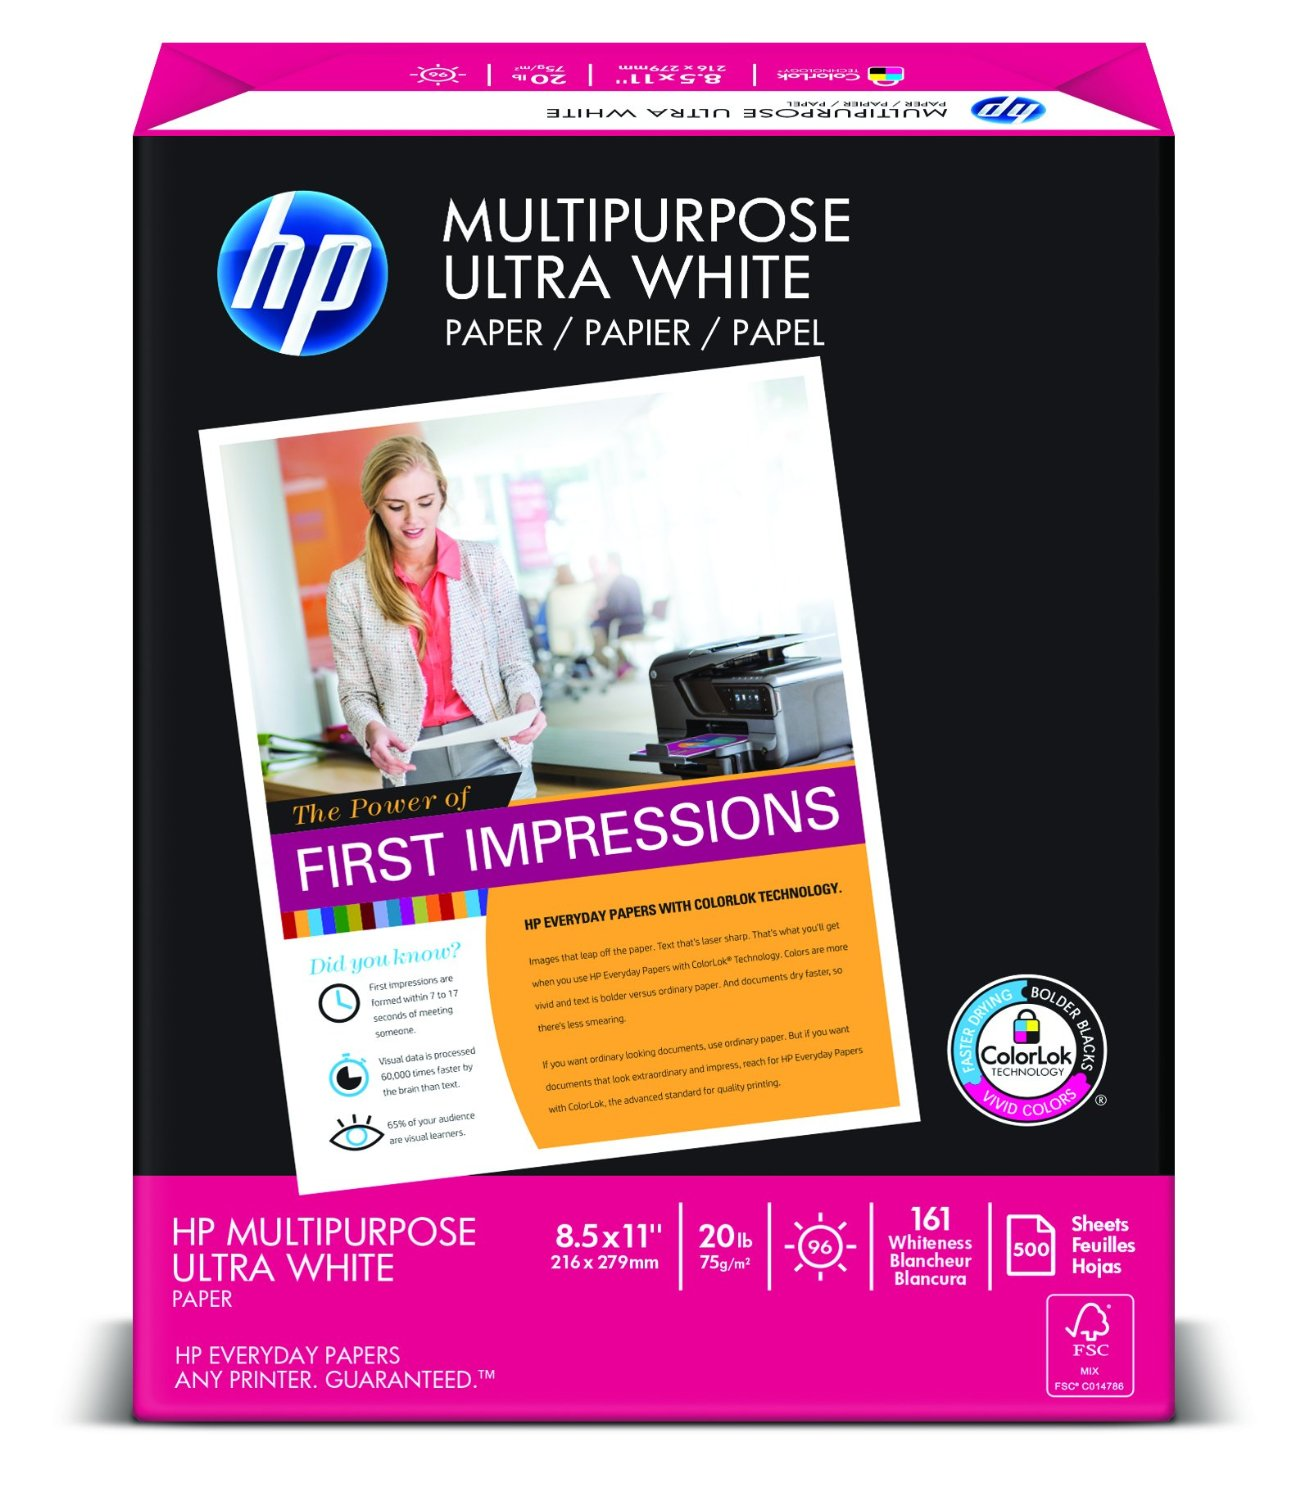 "HP Multipurpose Ultrawhite Letter Paper, 8.5 x 11"", 96 Bright with 20 Pounds Basis Weight – Available in 2 Sizes"